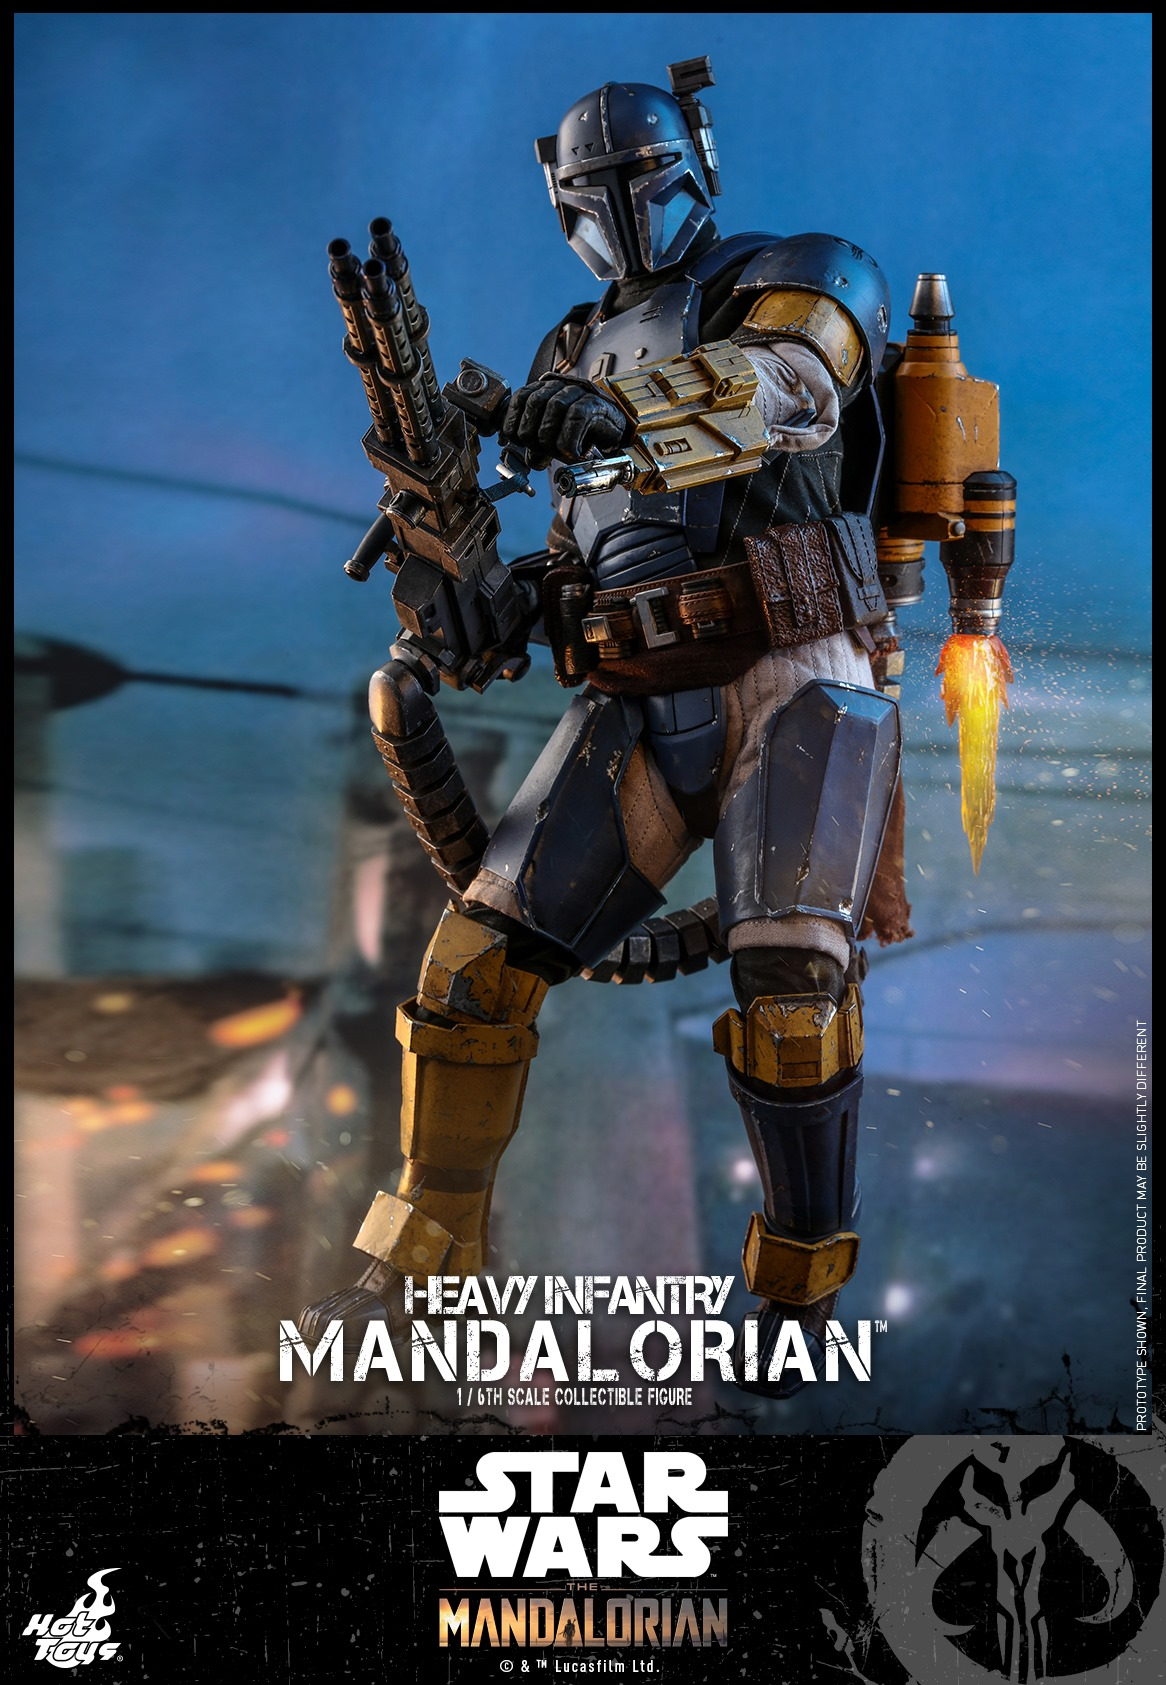 Pre-Order Hot Toys Star Wars The Mandalorian Heavy Infantry